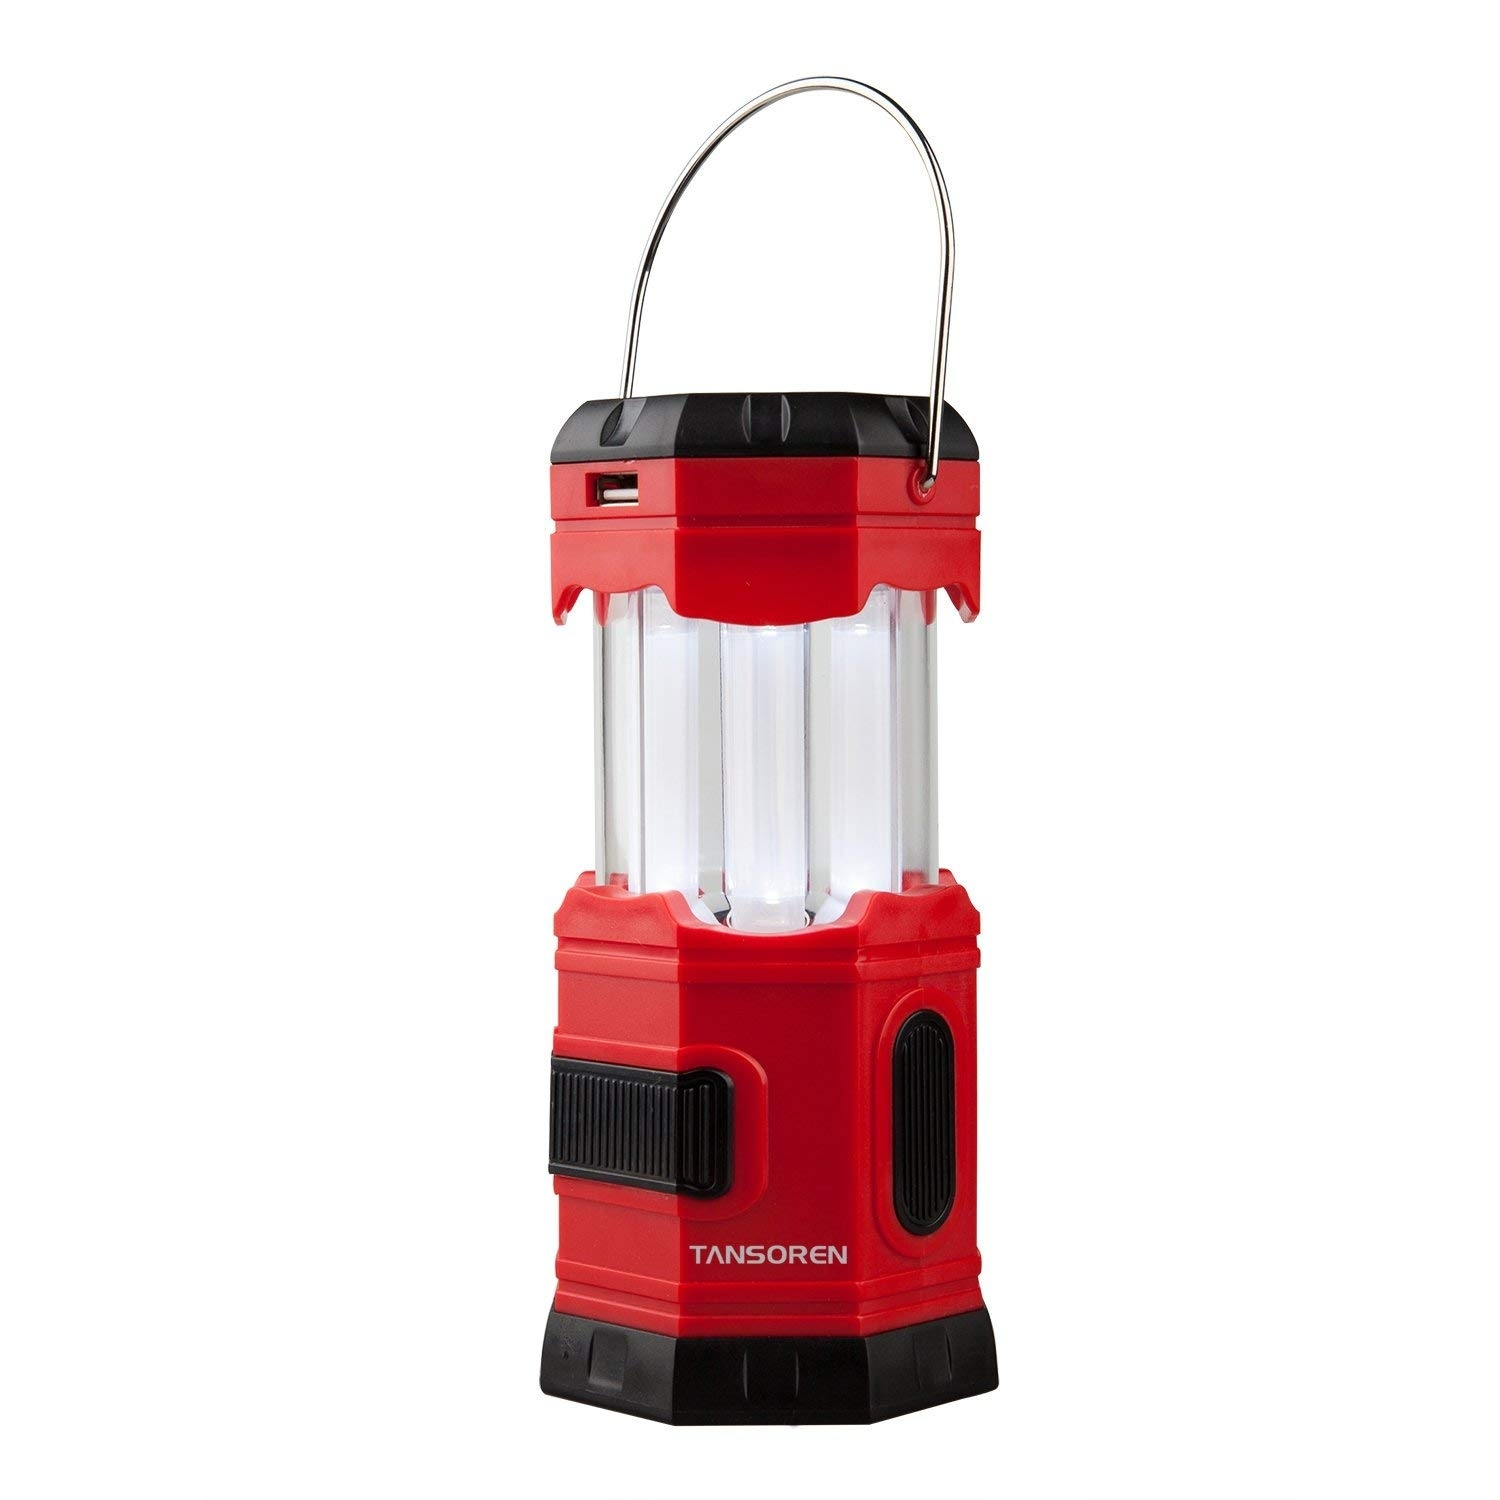 Amazon : Tansoren Portable Led Camping Lantern Solar Usb within Outdoor Rechargeable Lanterns (Image 4 of 20)